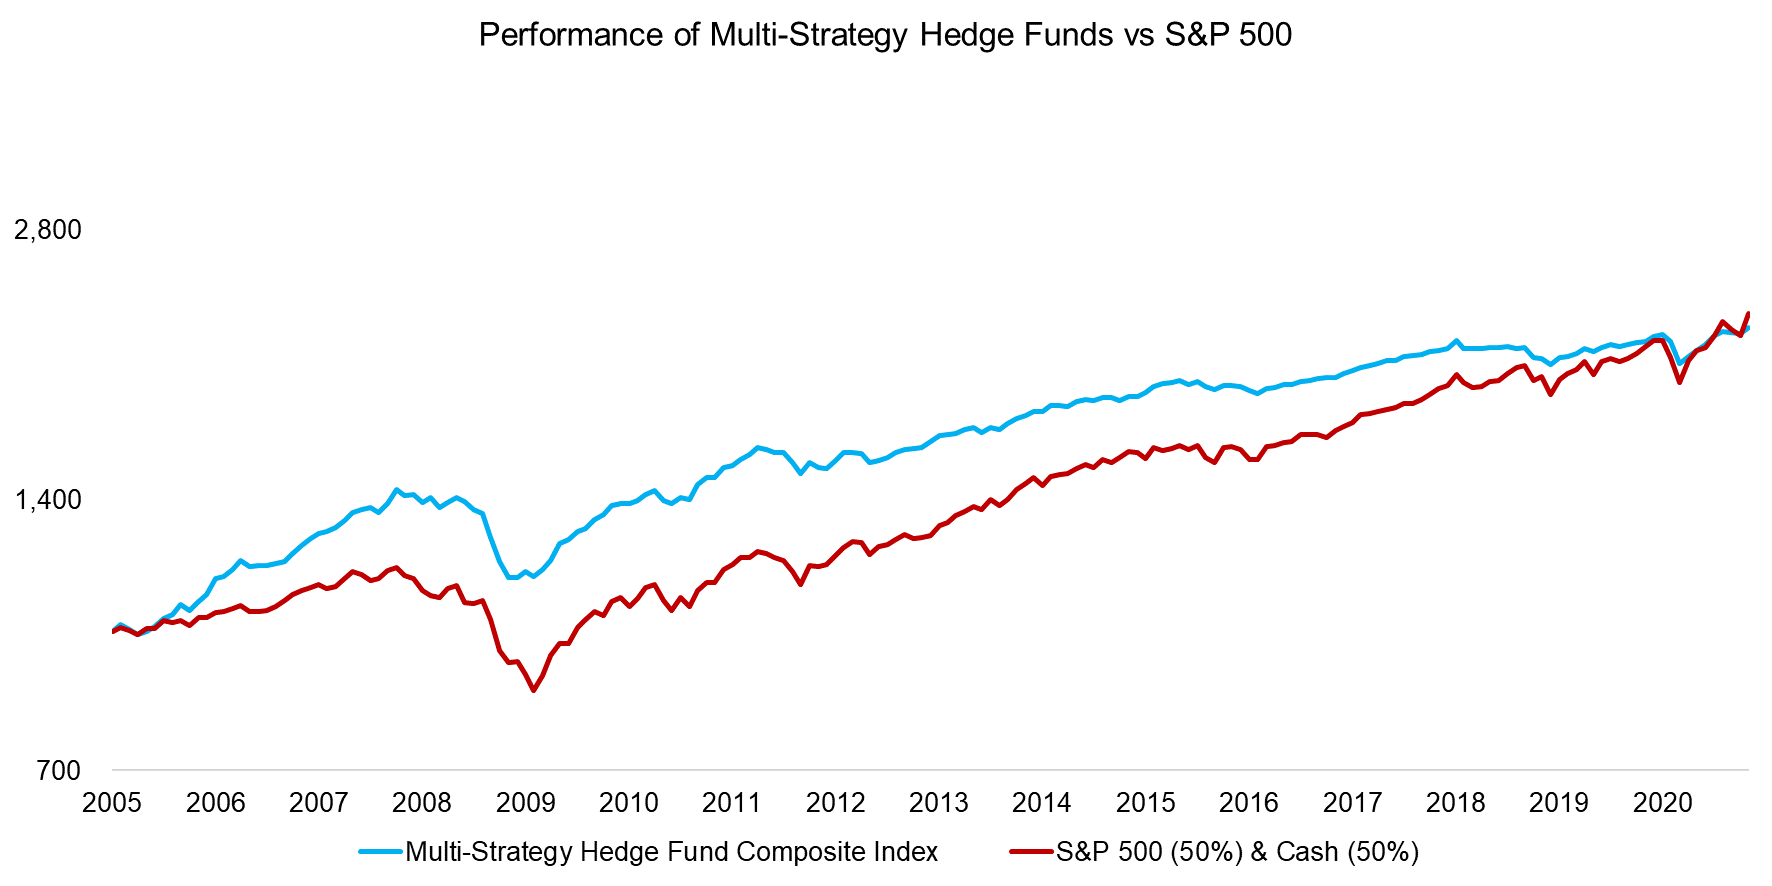 Performance of Multi-Strategy Hedge Funds vs S&P 500